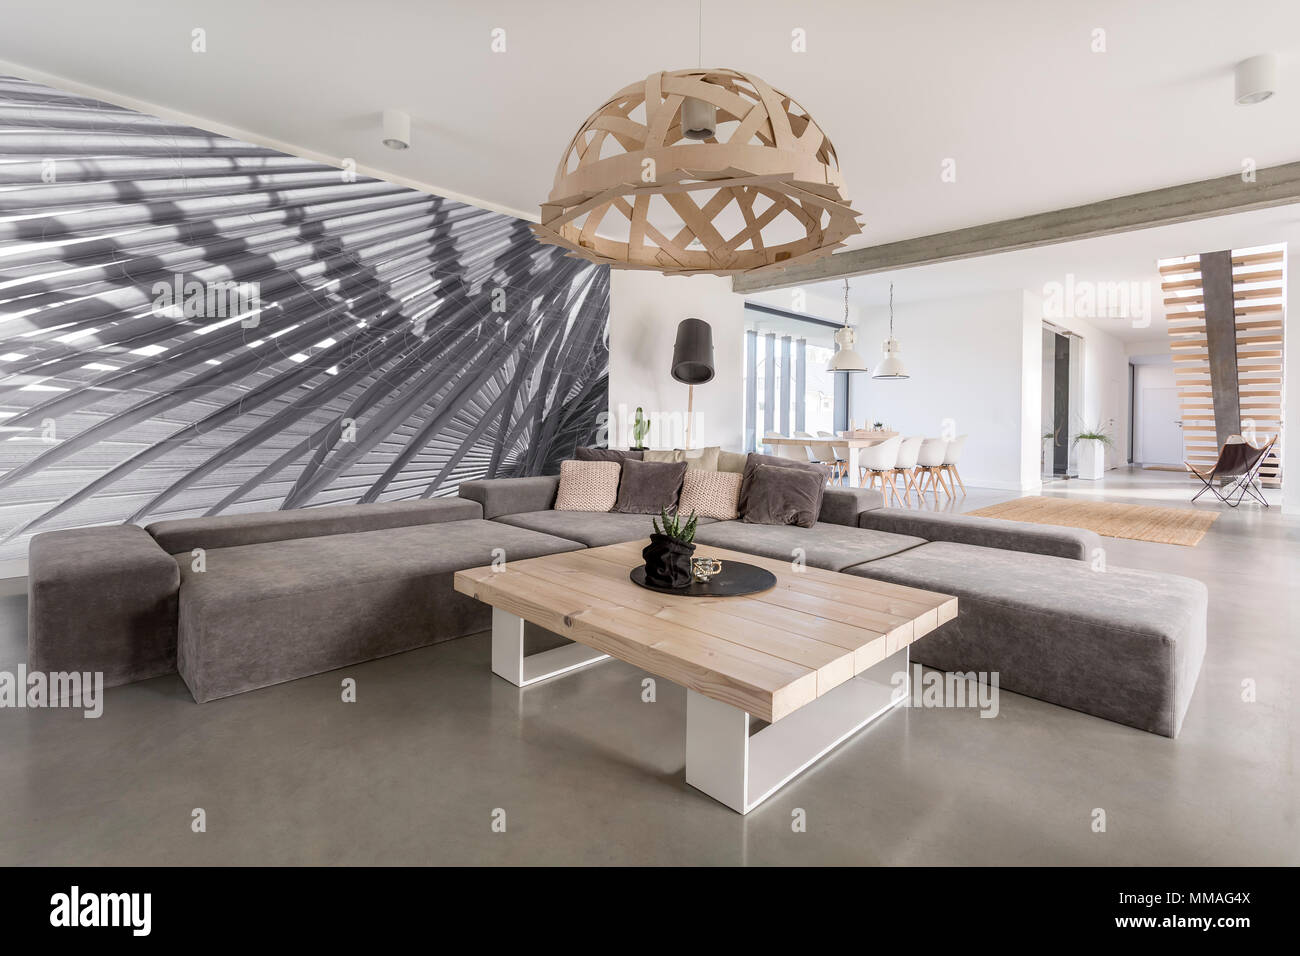 Room with extra large sofa, wooden table and photo wallpaper Stock Photo